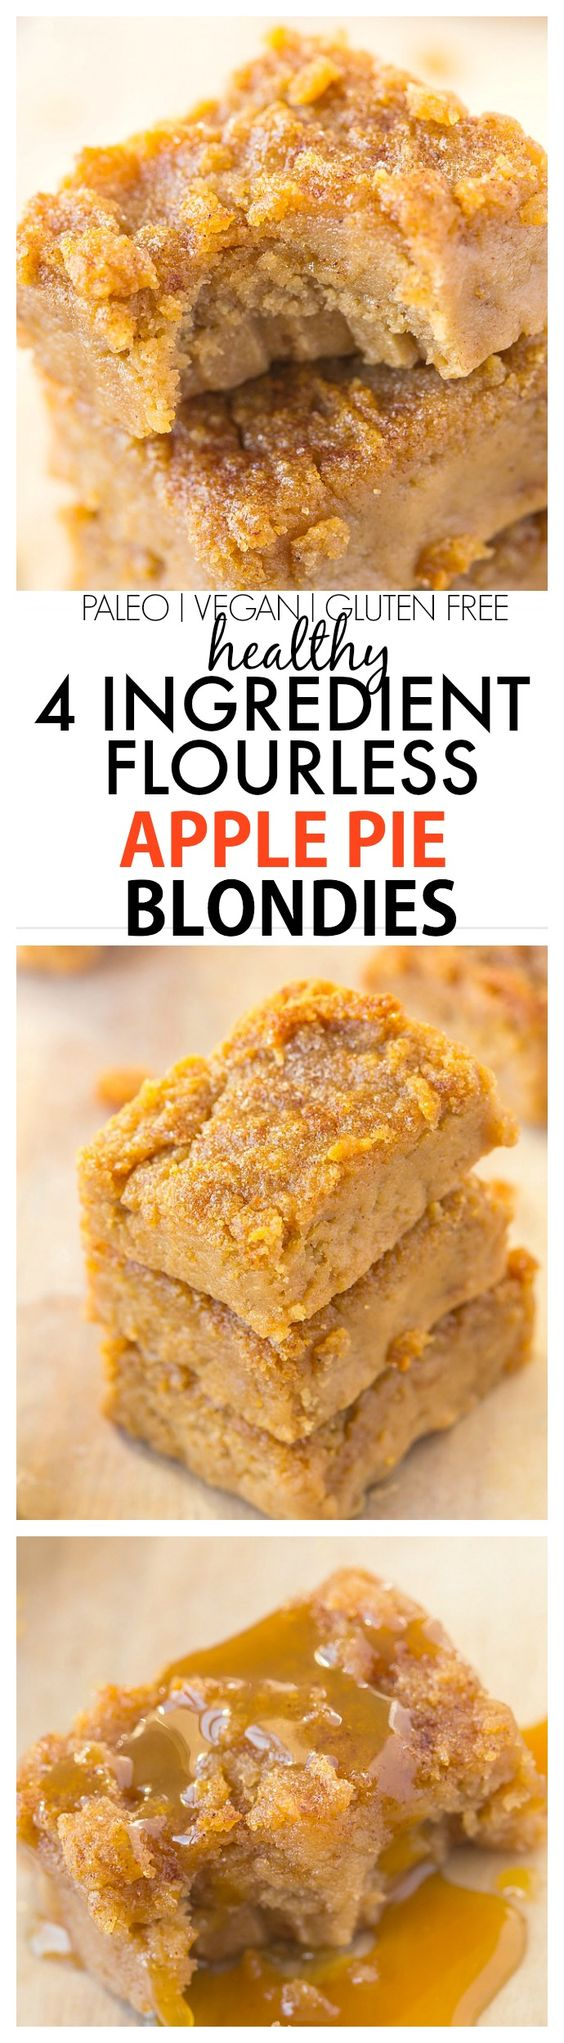 Healthy Four Ingredient Flourless Apple Pie Blondies recipe- A quick, easy and delicious recipe with 4 ingredients- NO white flour, white sugar, butter or oil! {vegan, gluten free, refined sugar free and paleo}: